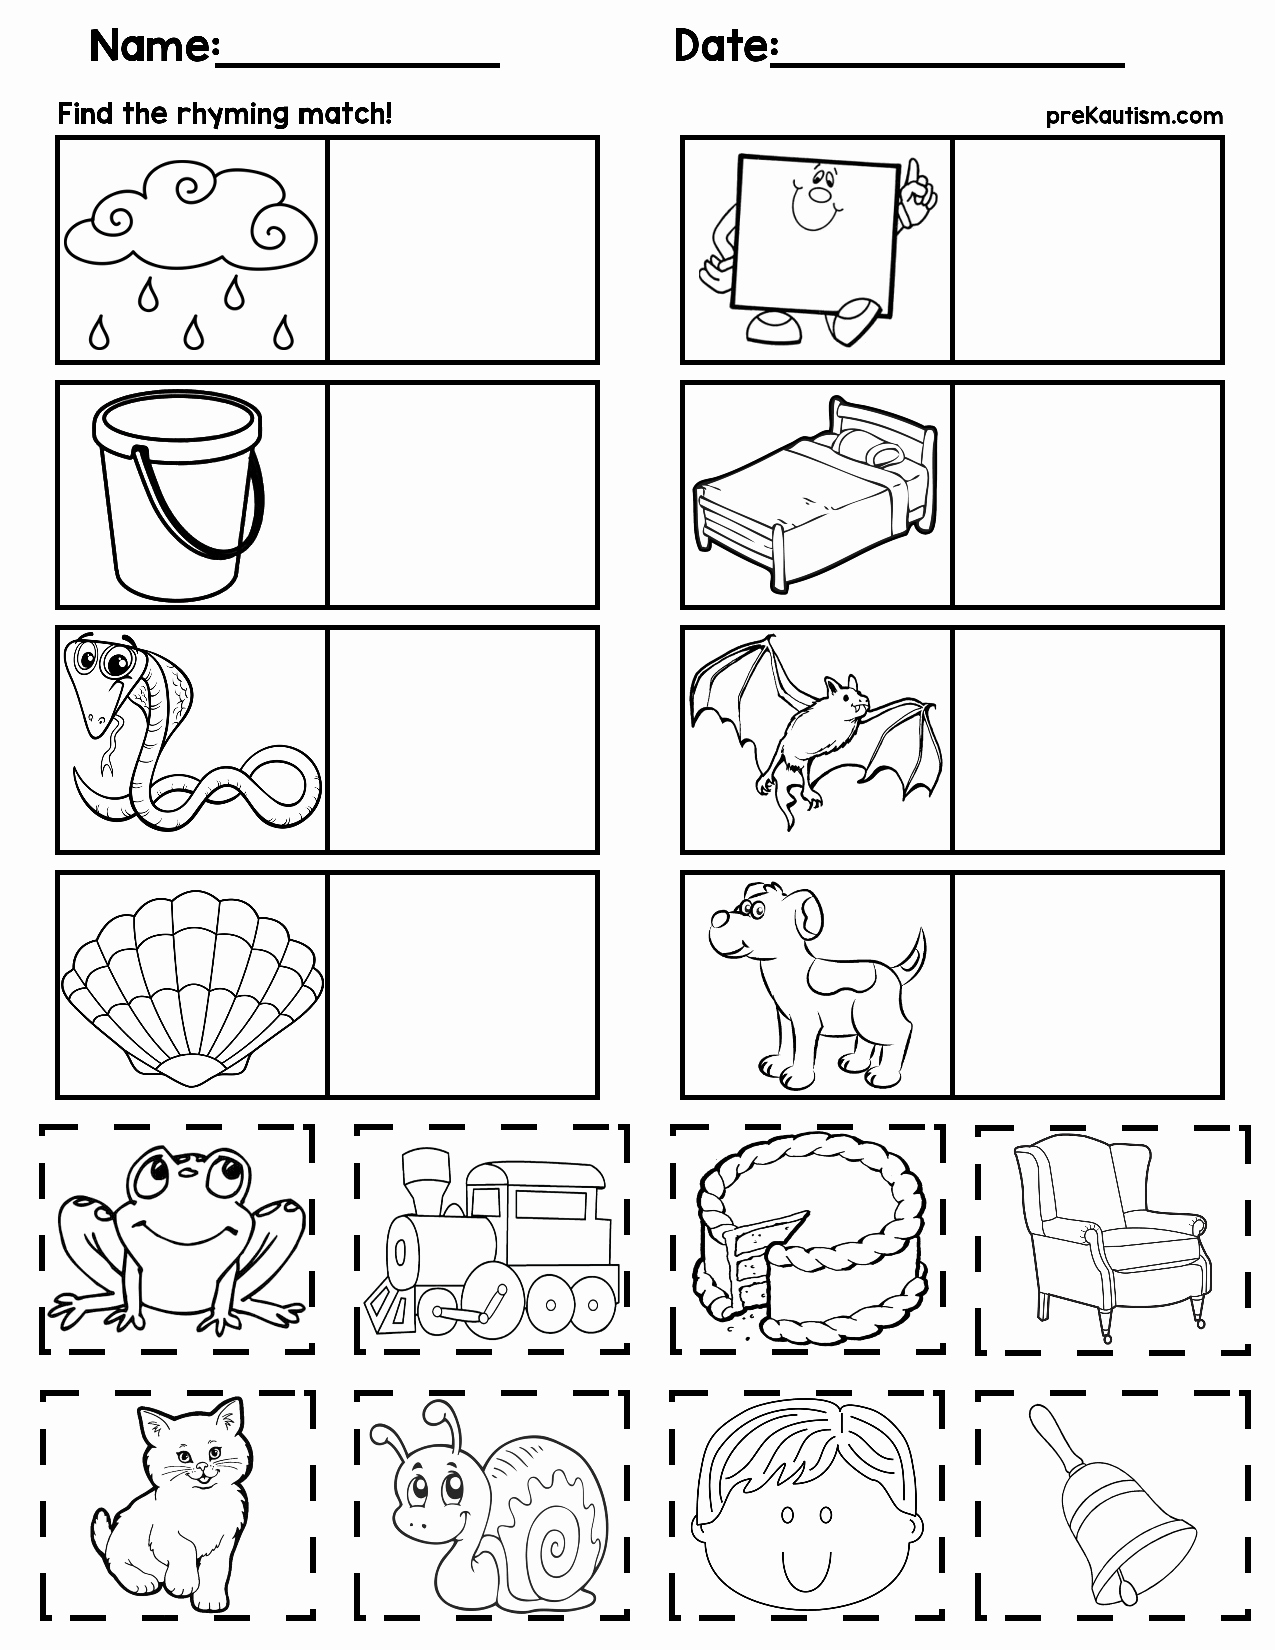 Rhyming Worksheets for Preschoolers Unique Matching Rhyming Words